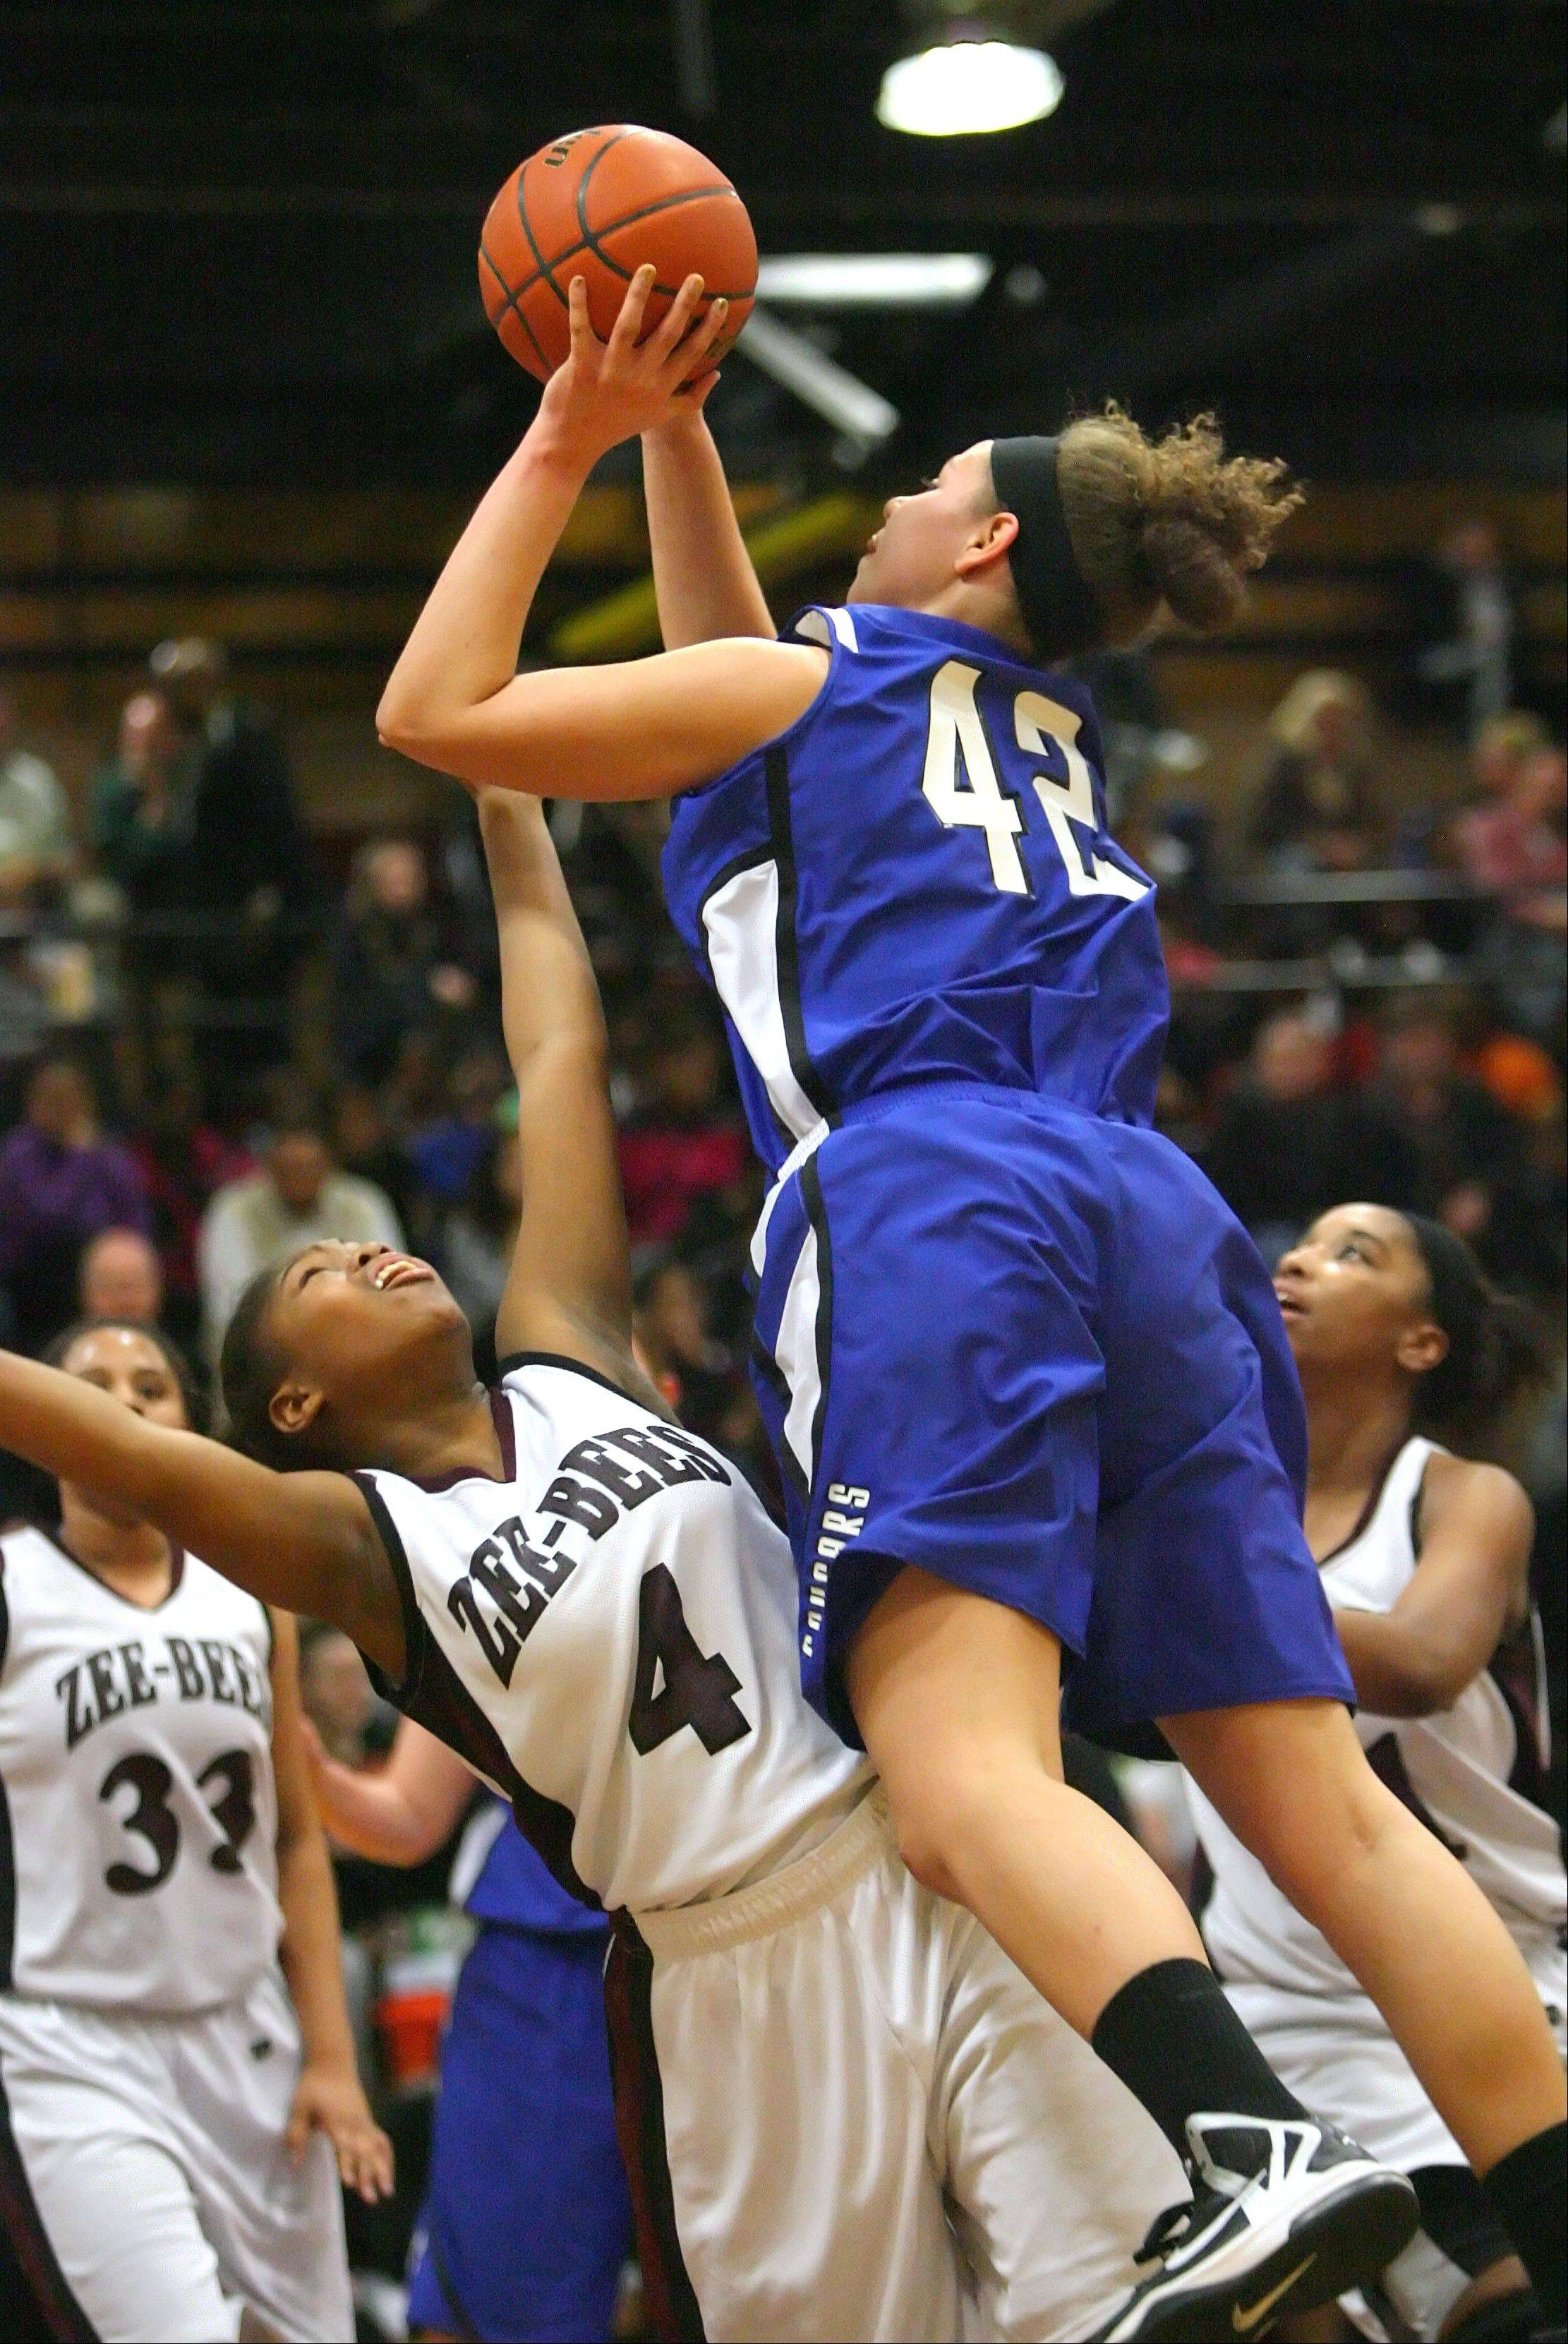 Vernon Hills' Lauren Webb, right, drives on Zion-Benton's Krystal Walker.